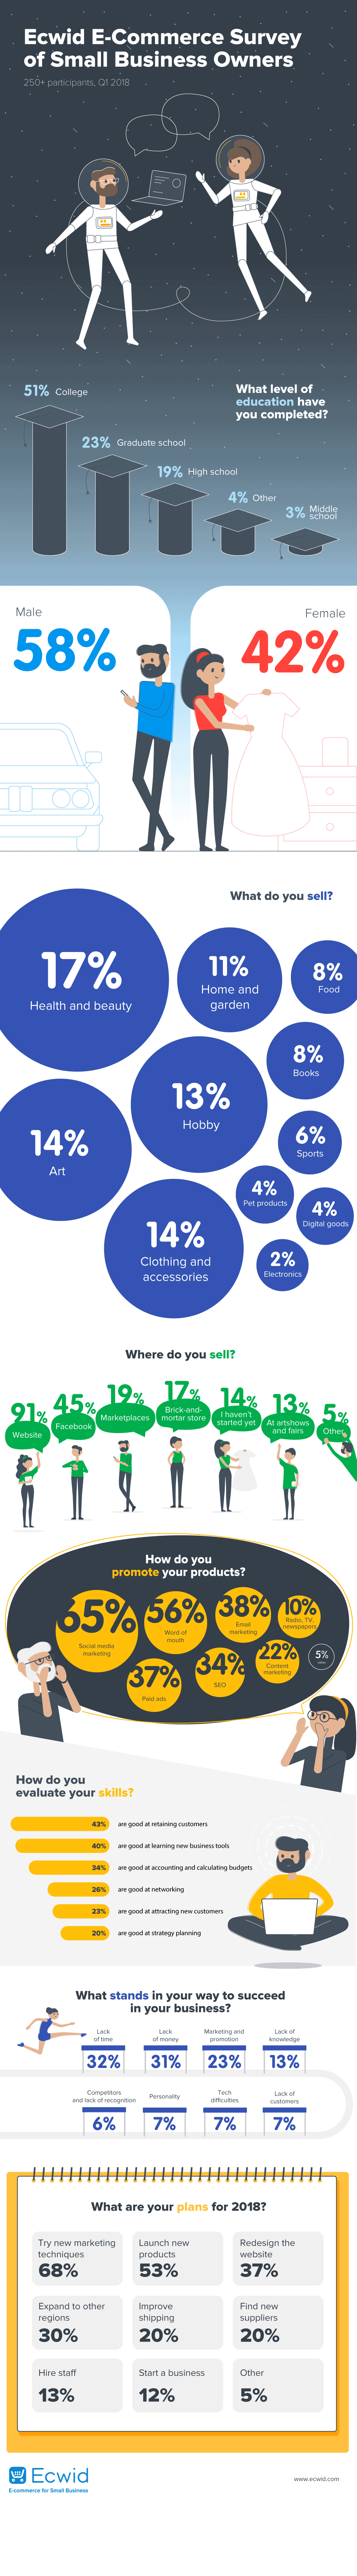 Infografik: Erkenntnisse aus Ecwid E-Commerce Survey of 250+ Small Business Owners